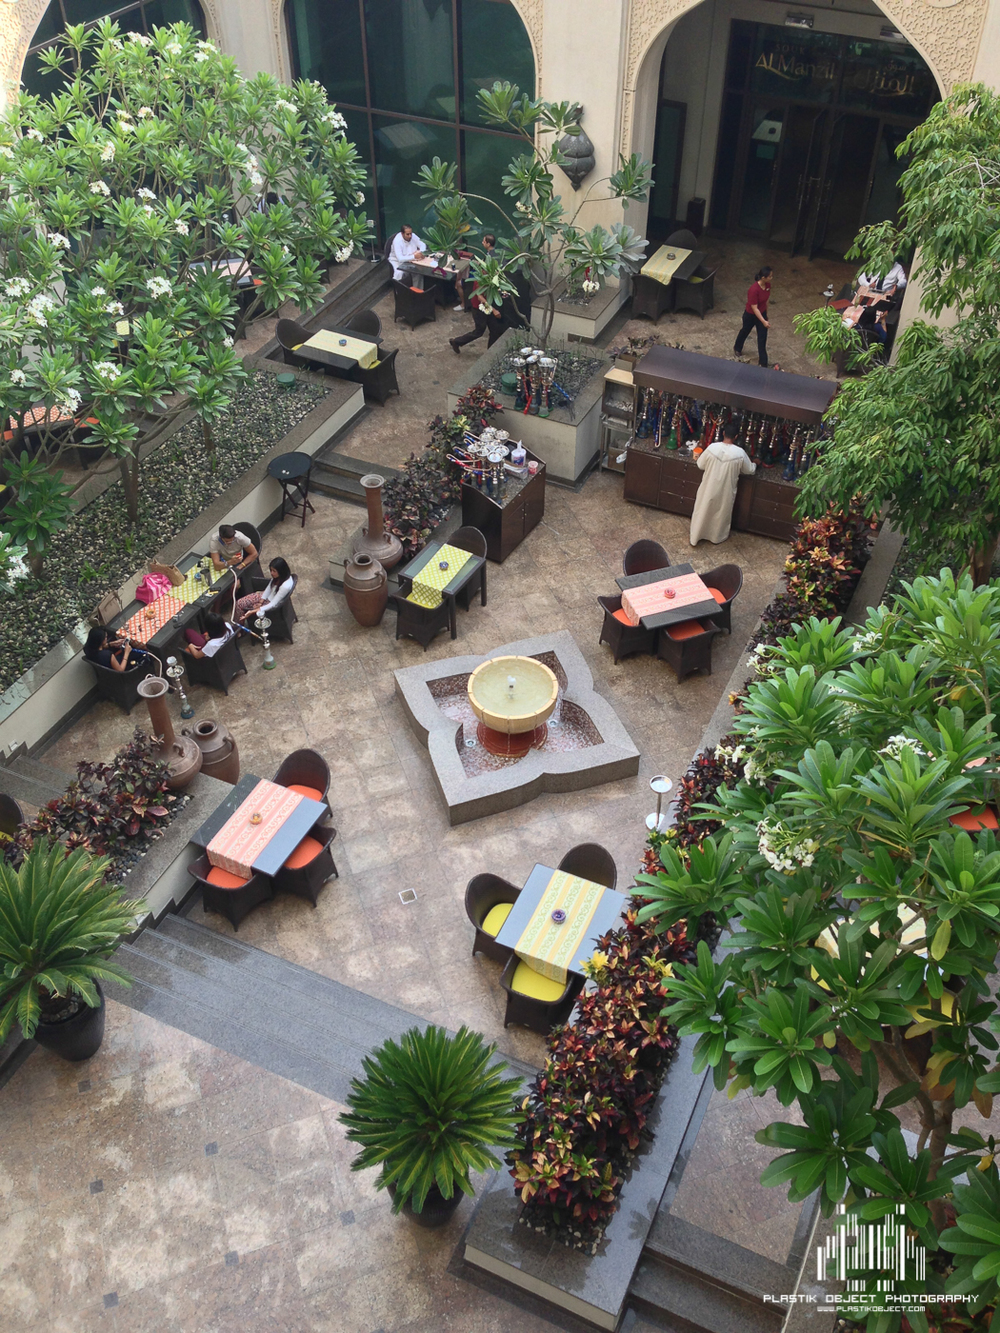 The hotel had a nice little courtyard that included a restaurant and hookah lounge